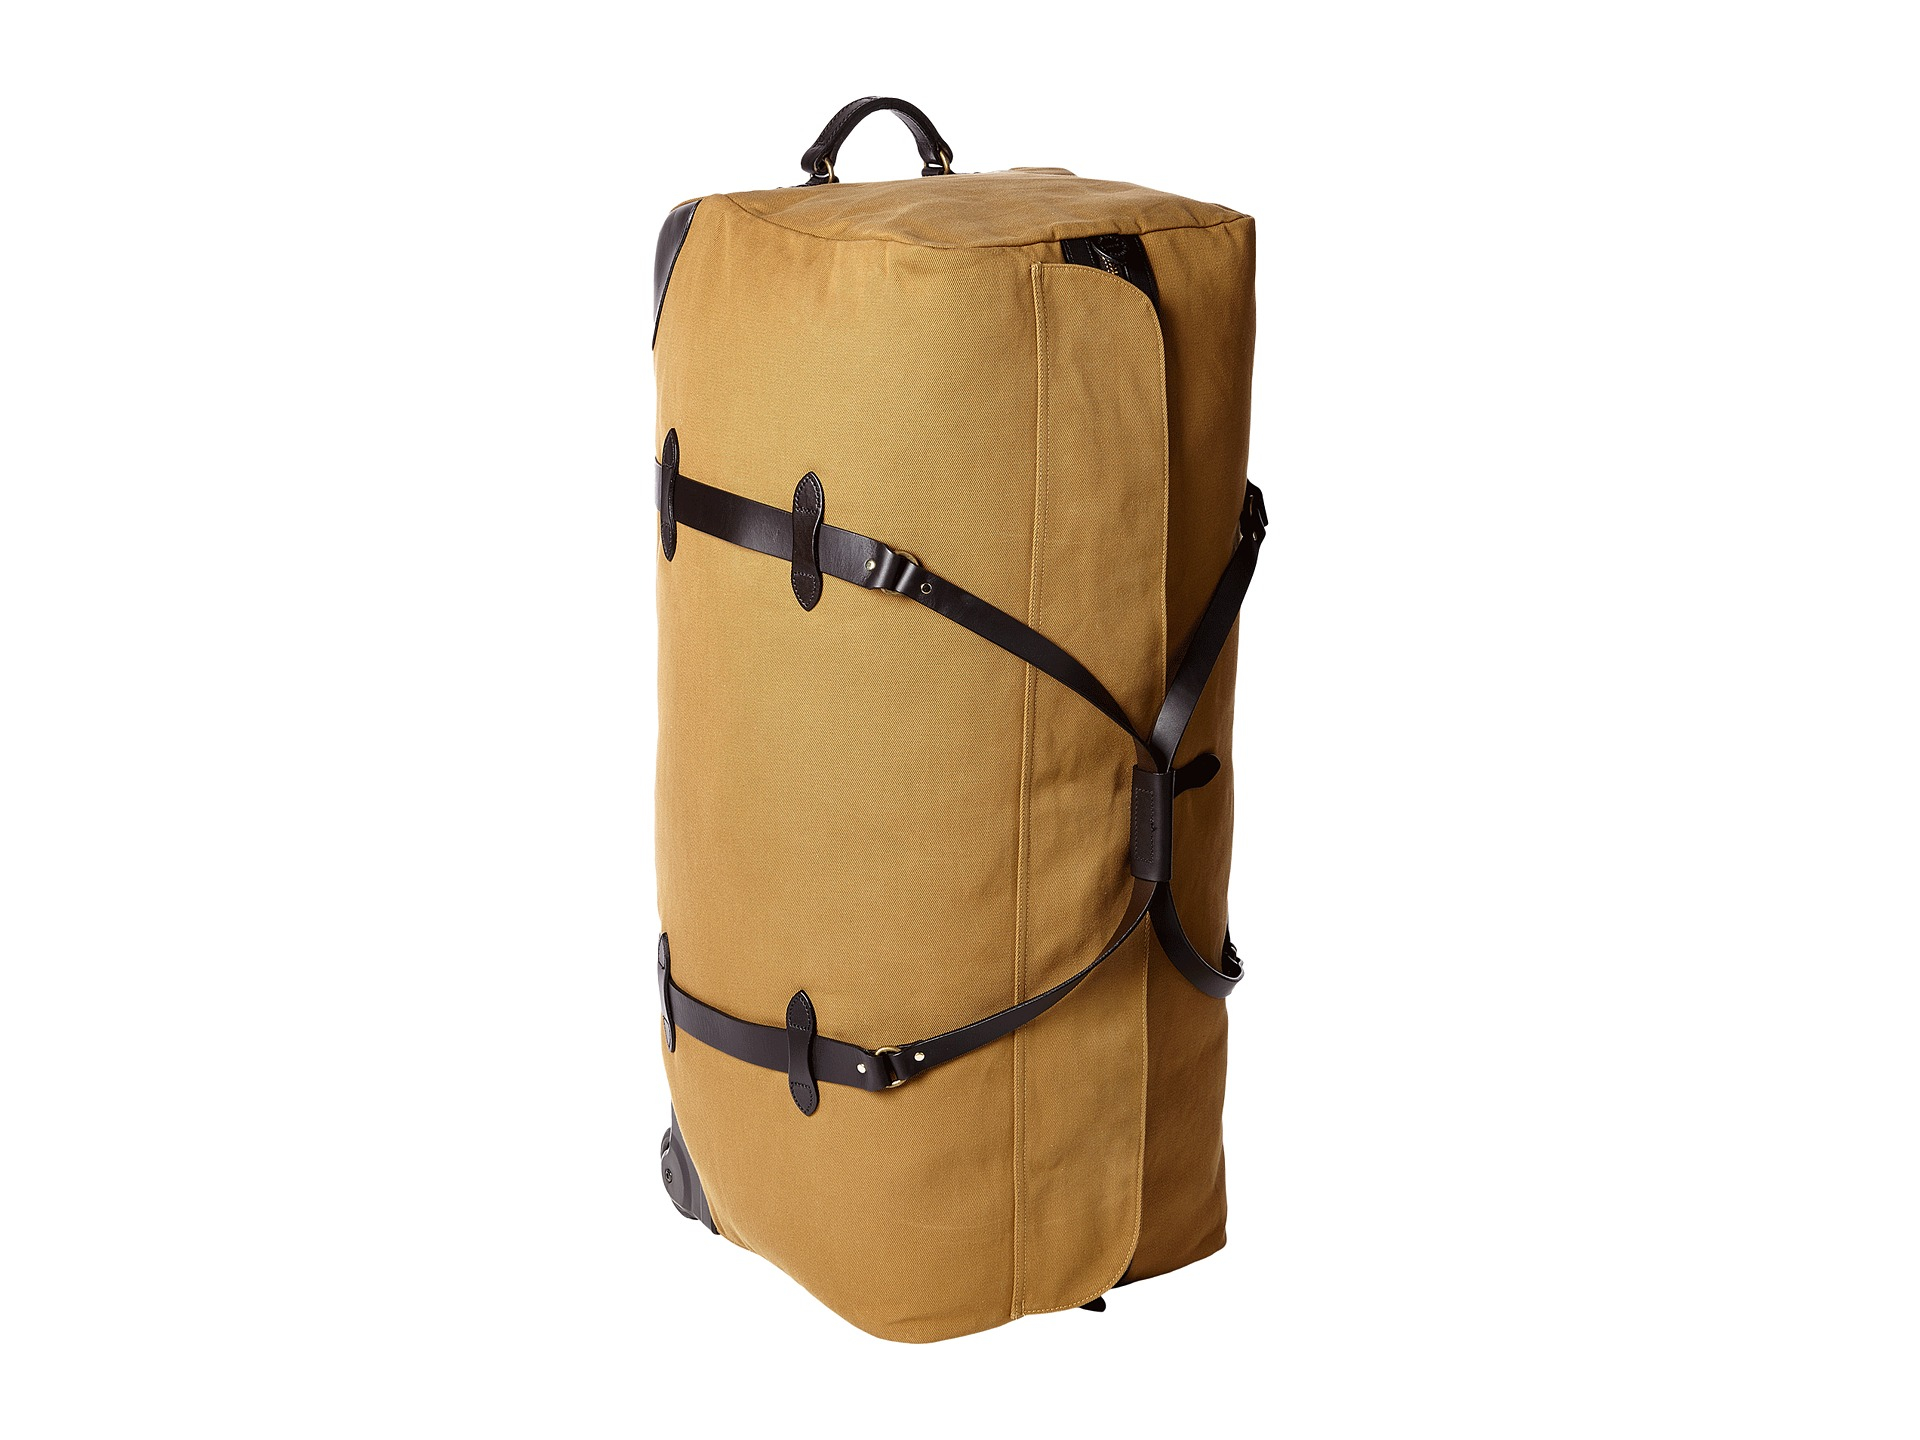 1d8bc1592dc6 Lyst - Filson Rolling Duffel - Extra Large in Brown